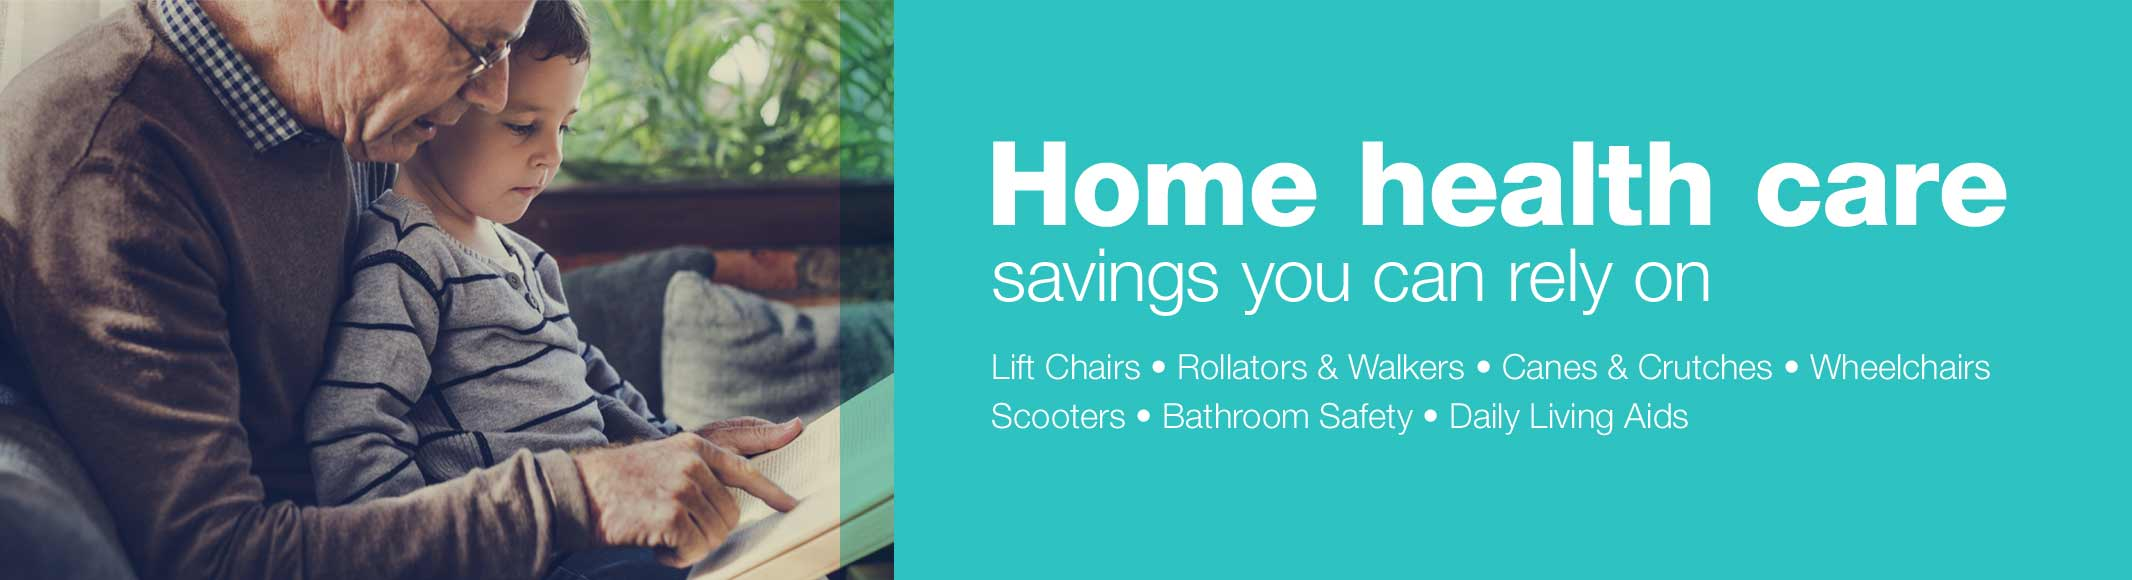 Home health care savings you can rely on. Lift Chairs - Rollators & Walkers - Canes & Crutches - Wheelchairs - Scooters - Bathroom Safety - Daily Living Aids